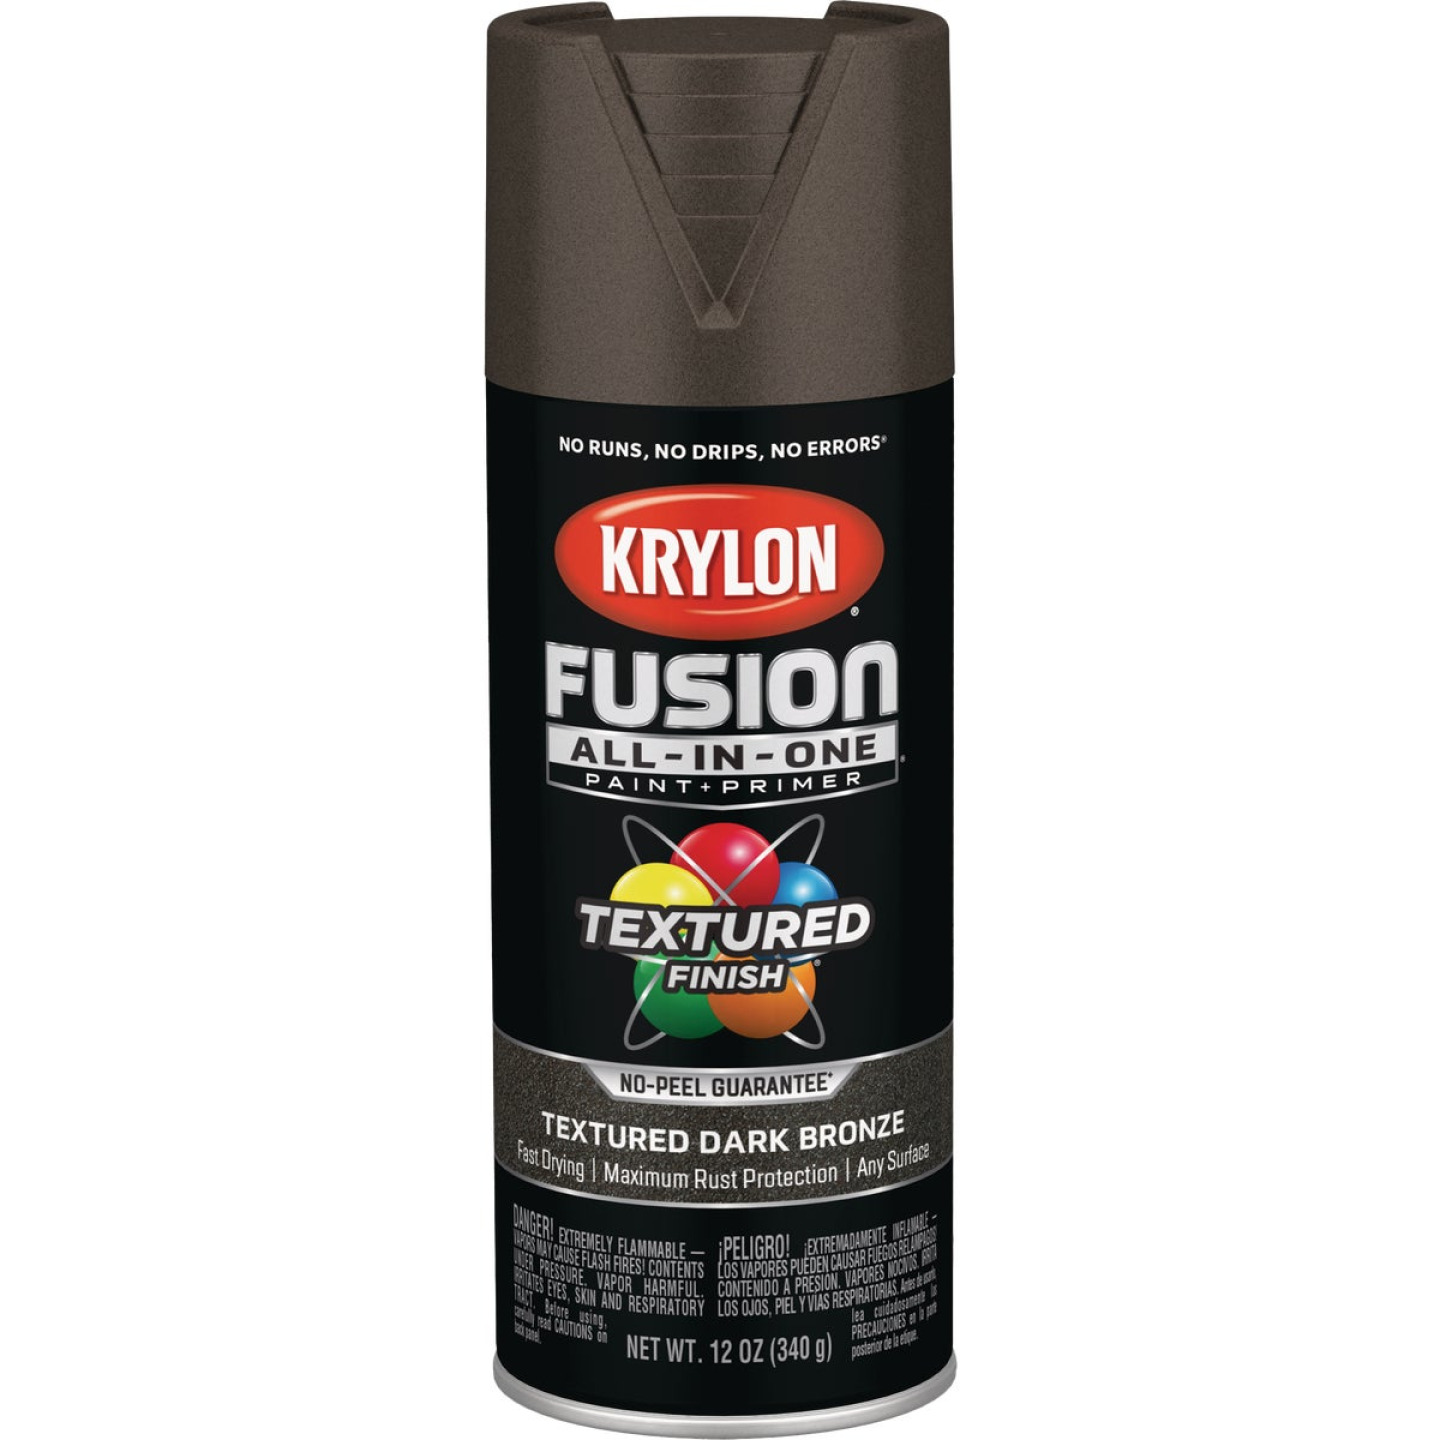 Krylon Fusion All-In-One Textured Spray Paint & Primer, Dark Bronze Image 1